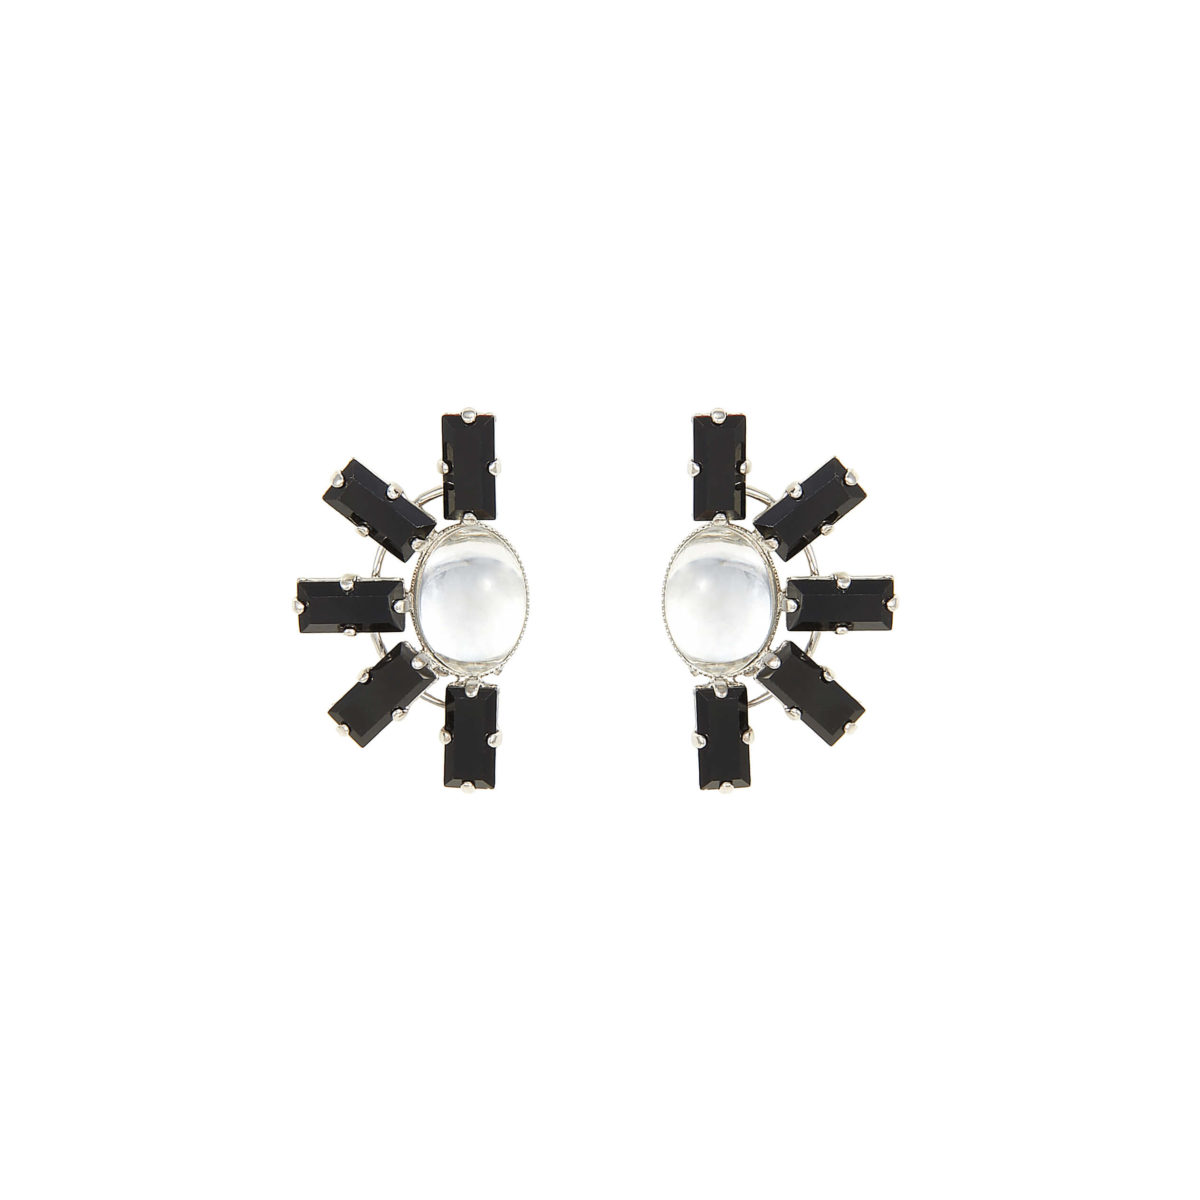 Boucles d'oreilles clips MADISON SQUARE MDS103-col1 packshot